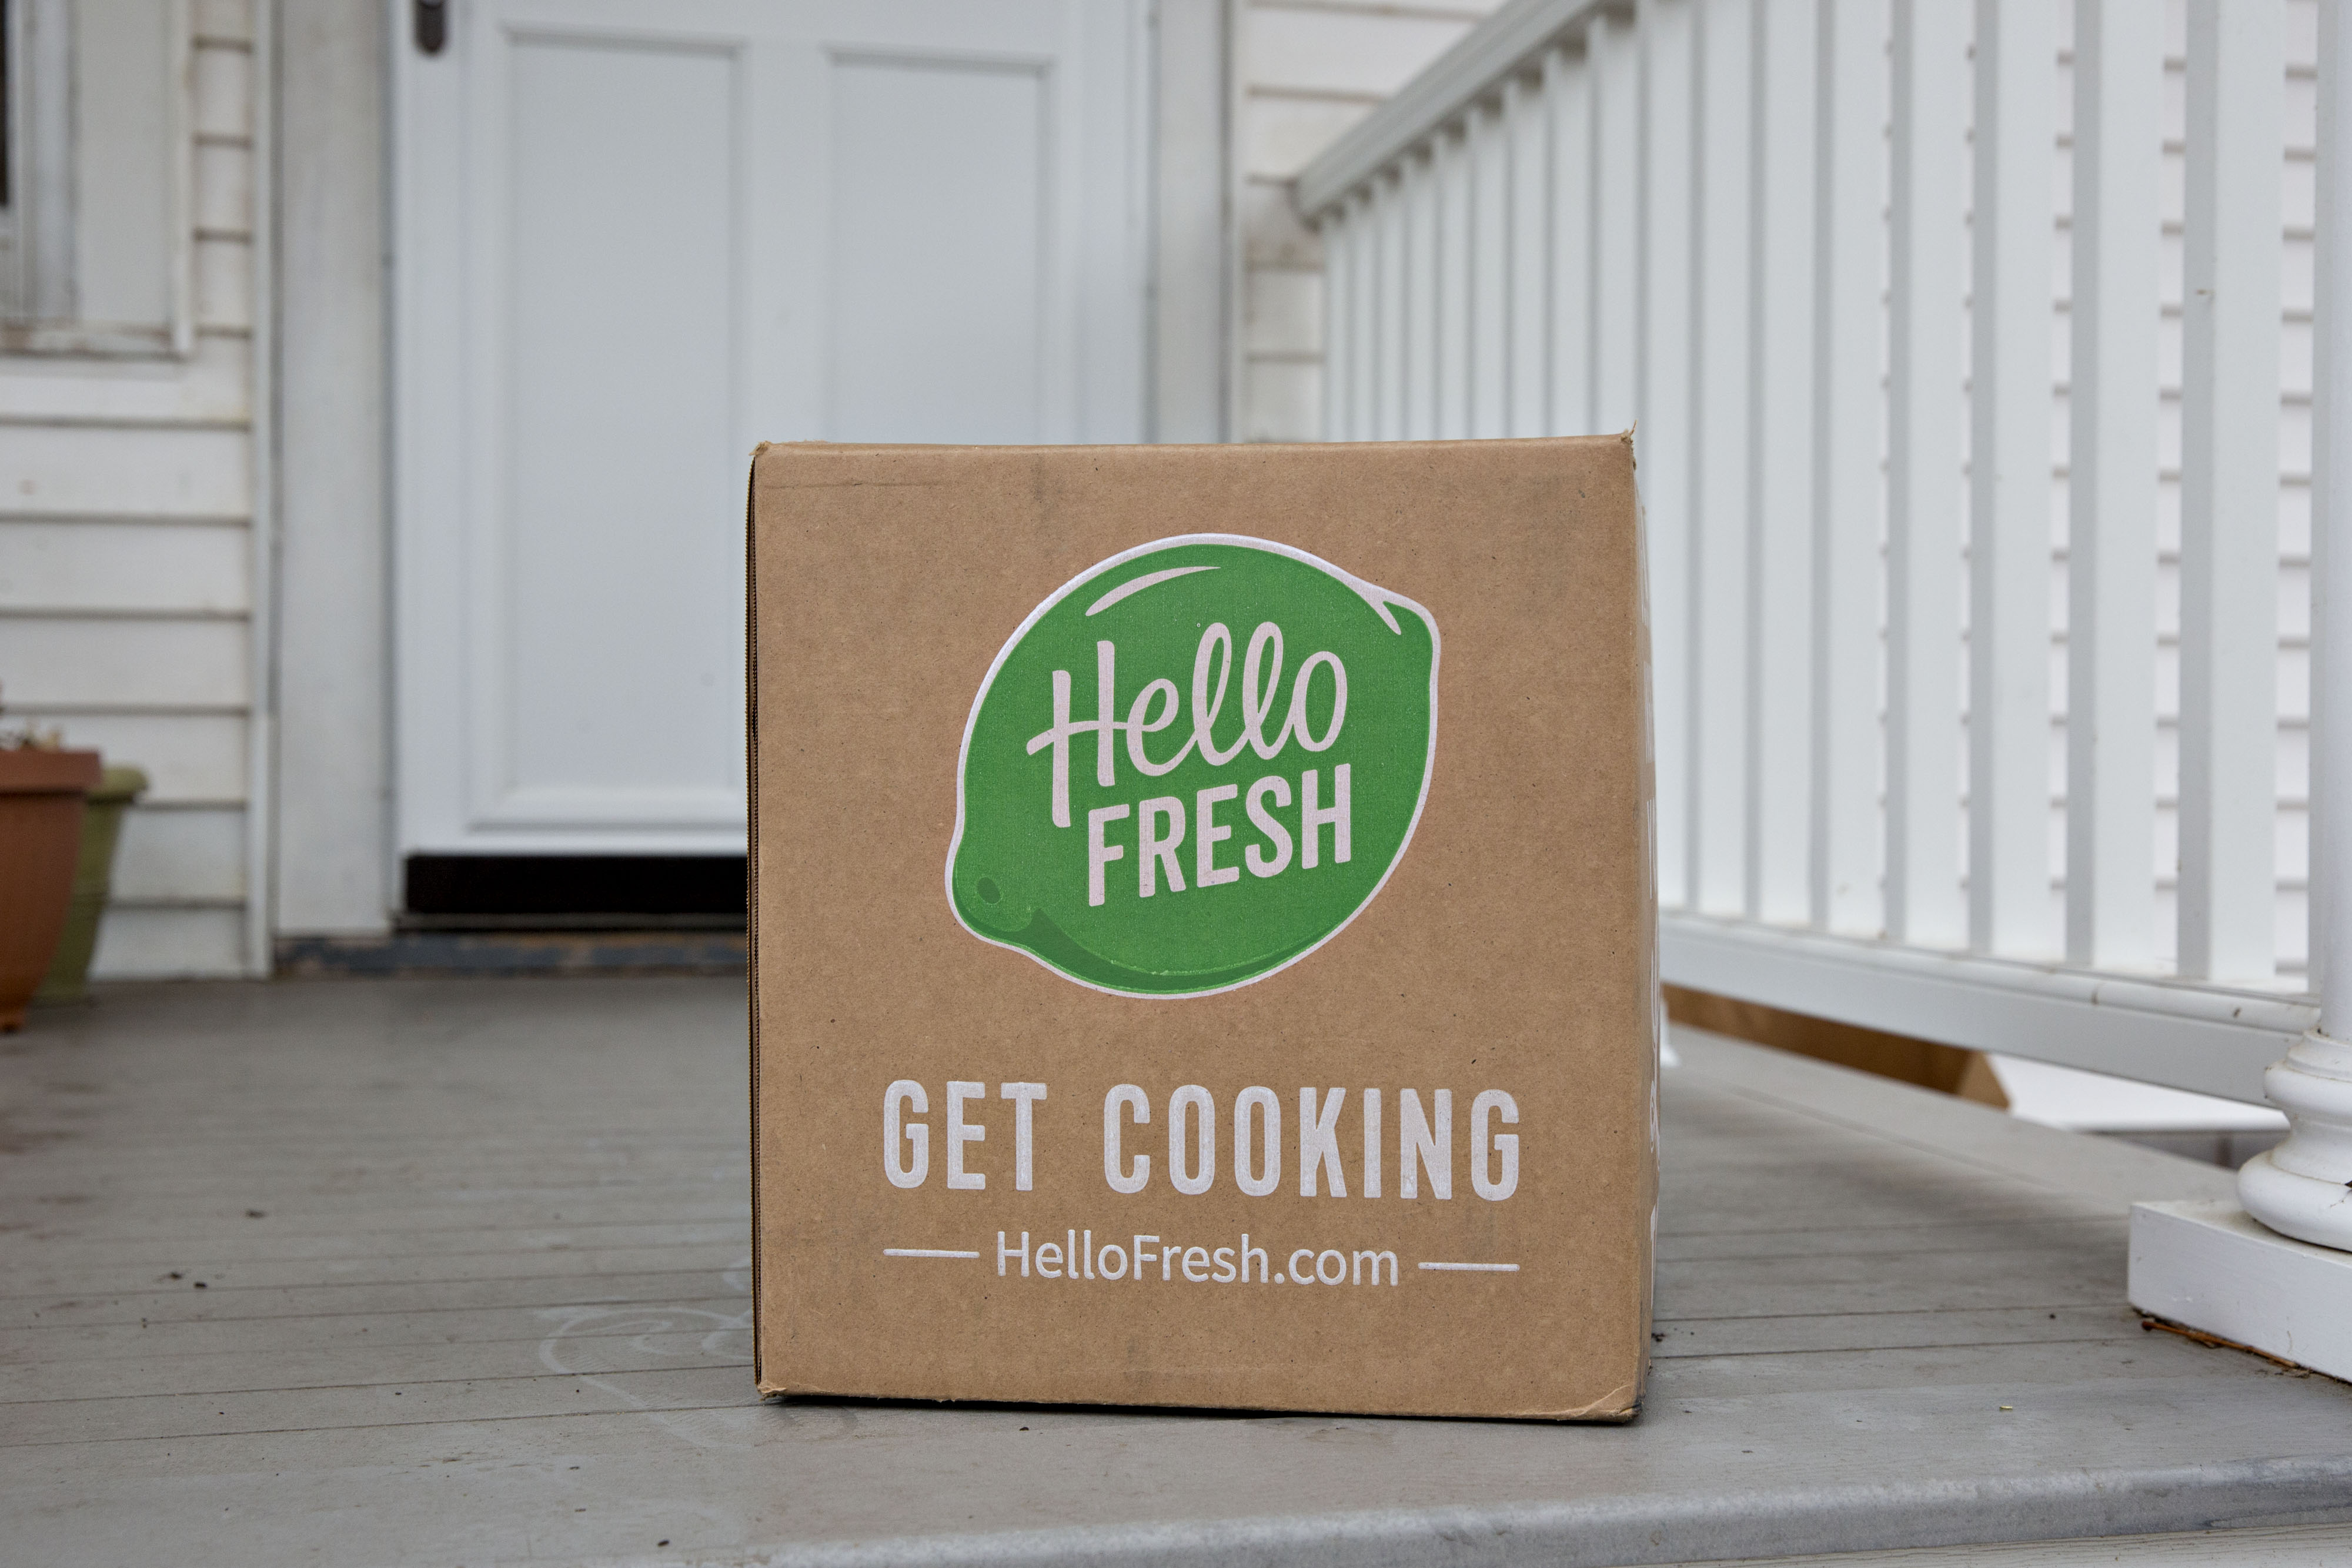 HelloFresh Workers Unionize to Improve Brutal Working Conditions